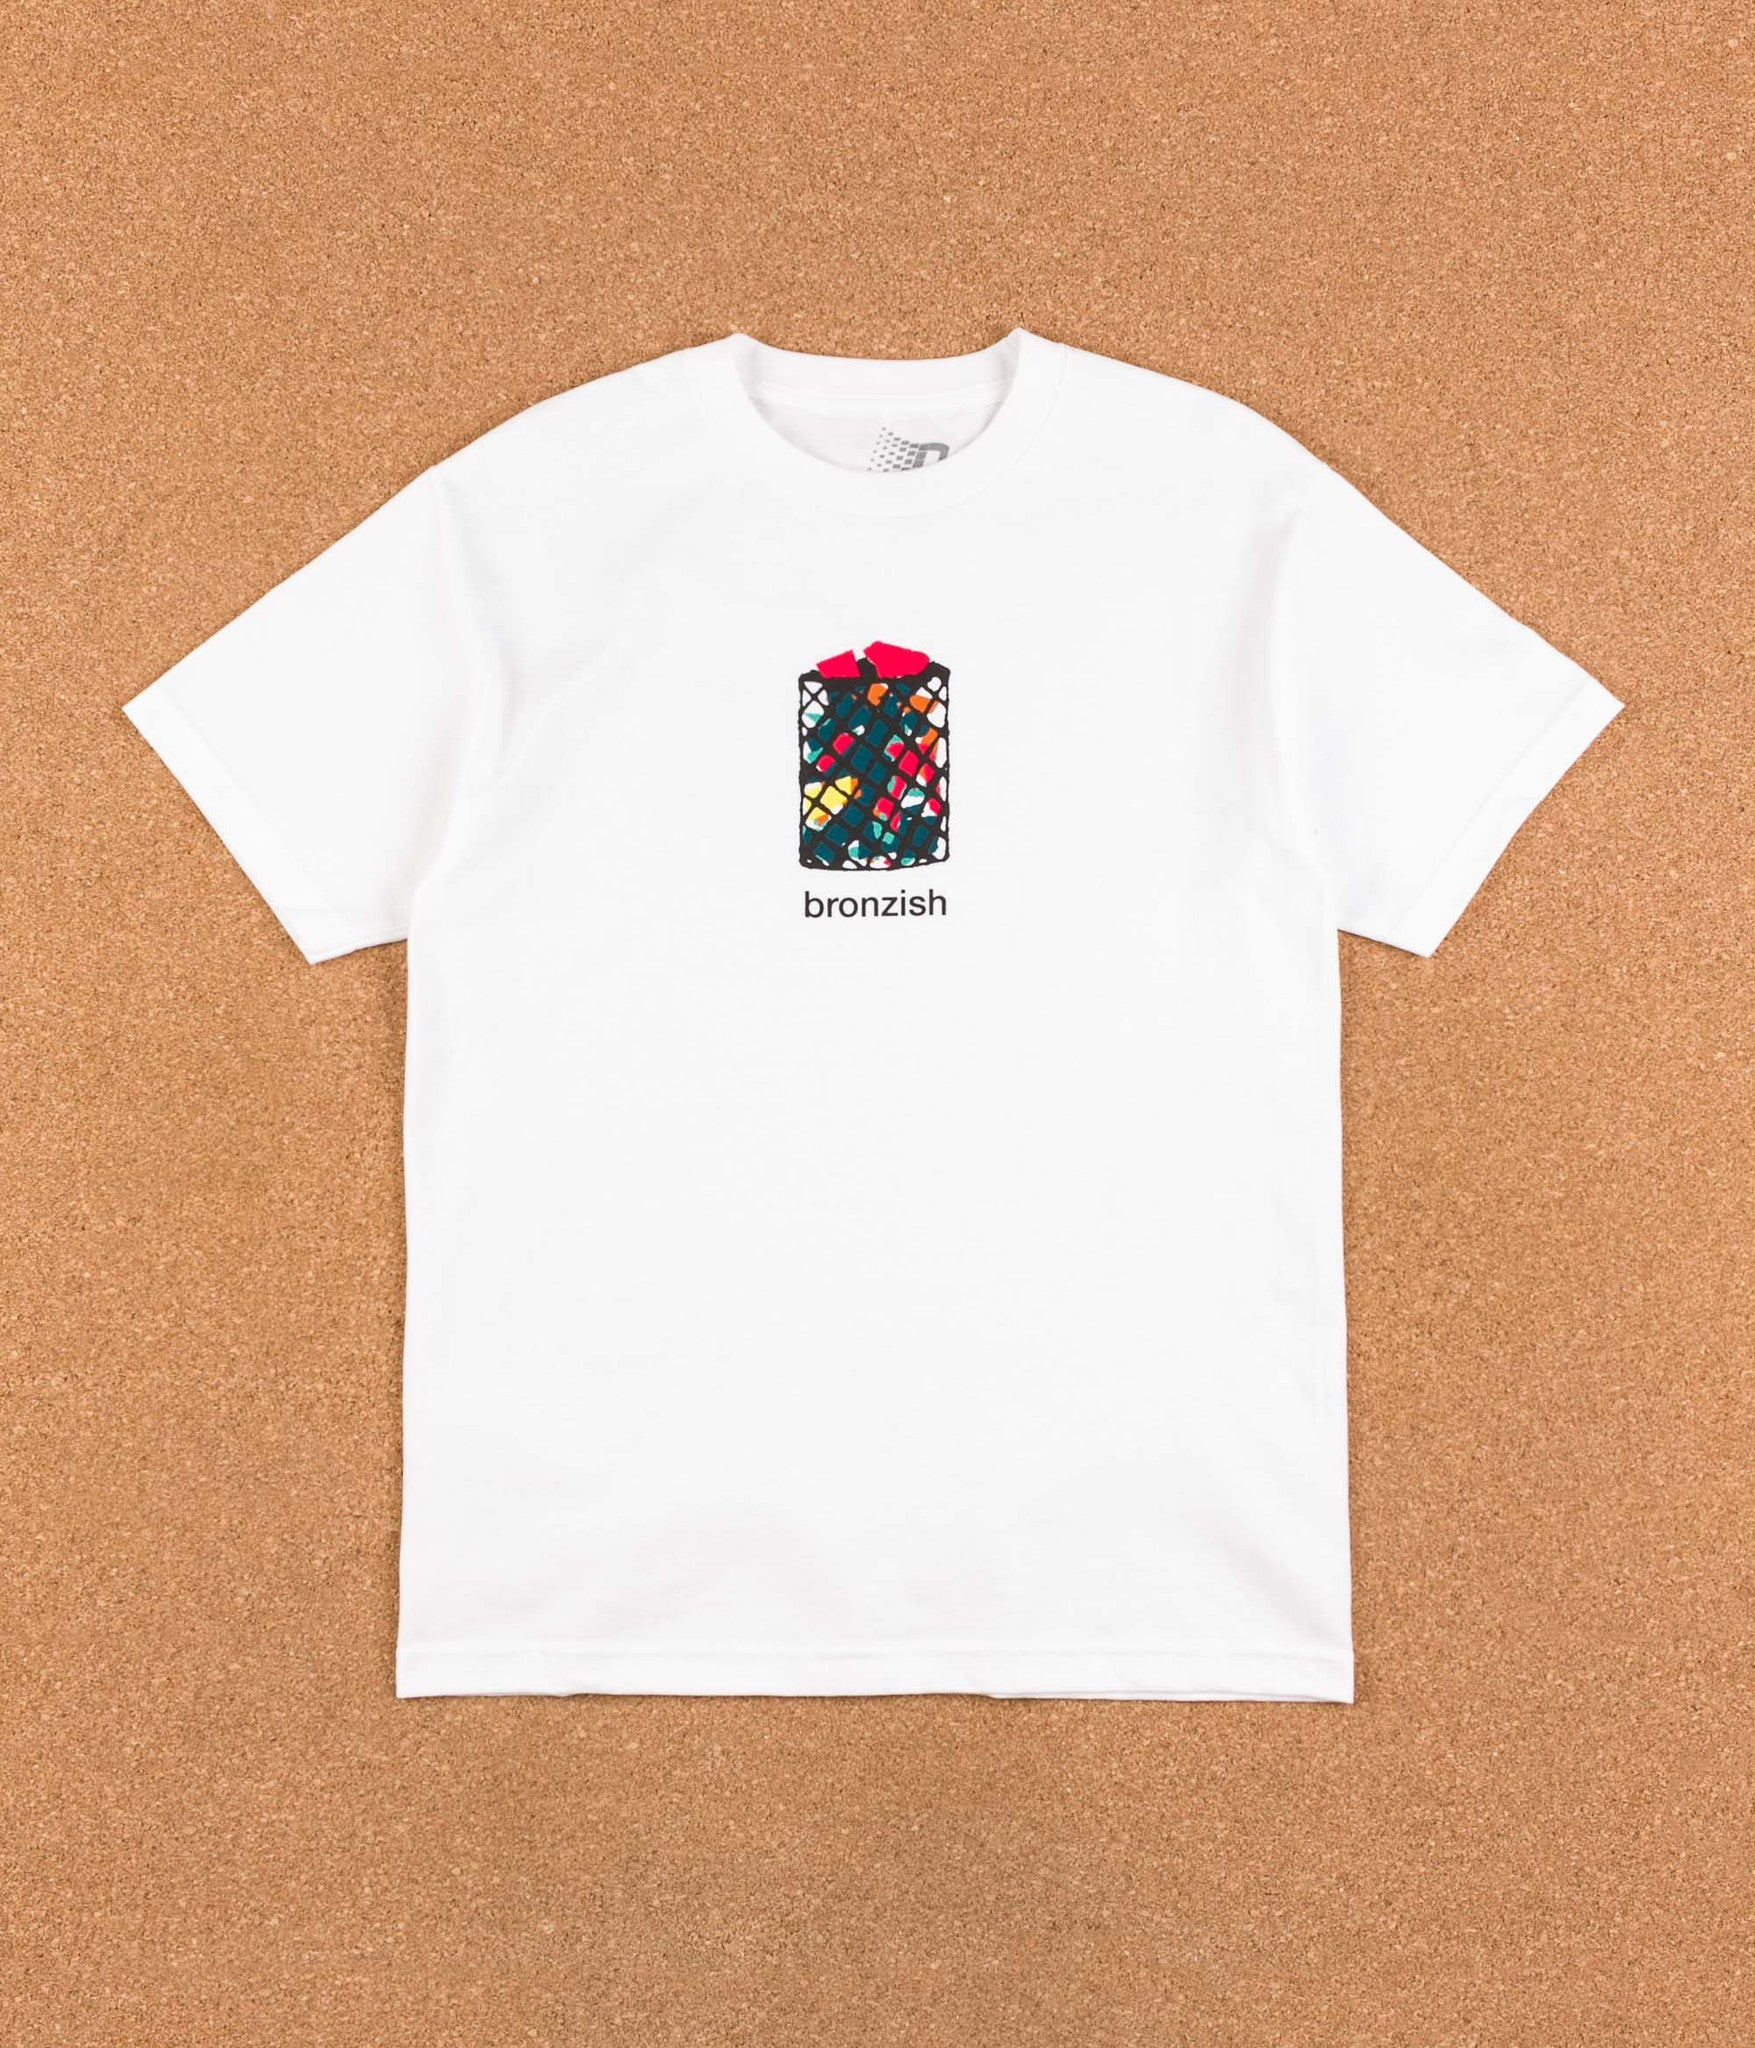 Bronze 56k Bronzish T-Shirt - White